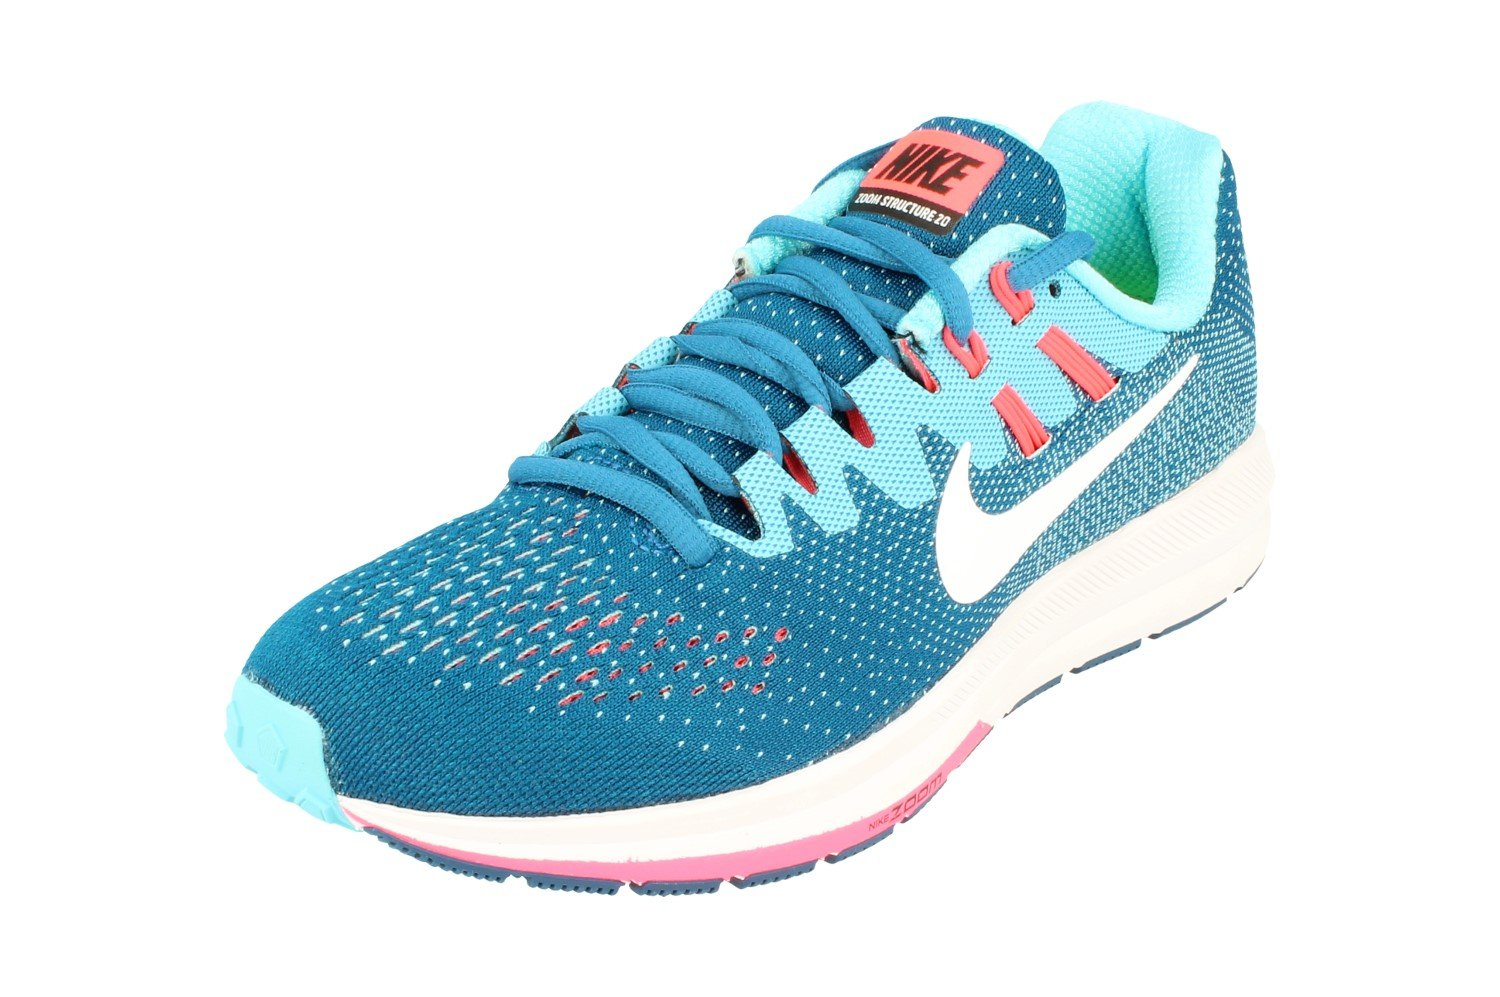 Nike Wmns Air Zoom Structure 20, Industrial Blue/White-Pola: Amazon.es: Deportes y aire libre